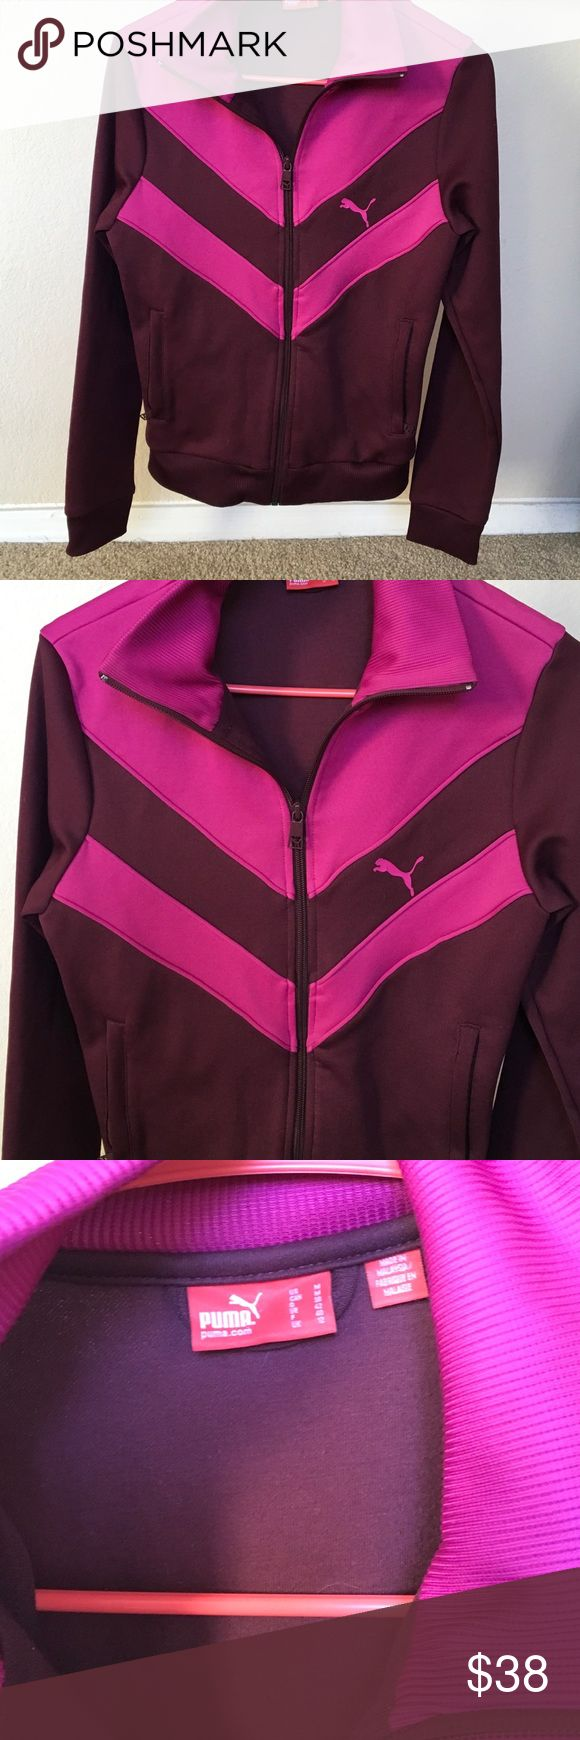 "PUMA Original old school Zip Up Burgundy Jacket M Great colors pop on this old school vintage style Zip Up warmup jog suit jacket... BURGUNDY w/ pink insets... PINK PUMA..SIZE M....18 1/2' underarm -underarm....23 1/2"" shoulder to edge. 2zip pockets front🎀🛍🎀🛍🎀🛍🎀🛍🎀🛍🎀 Puma Tops"